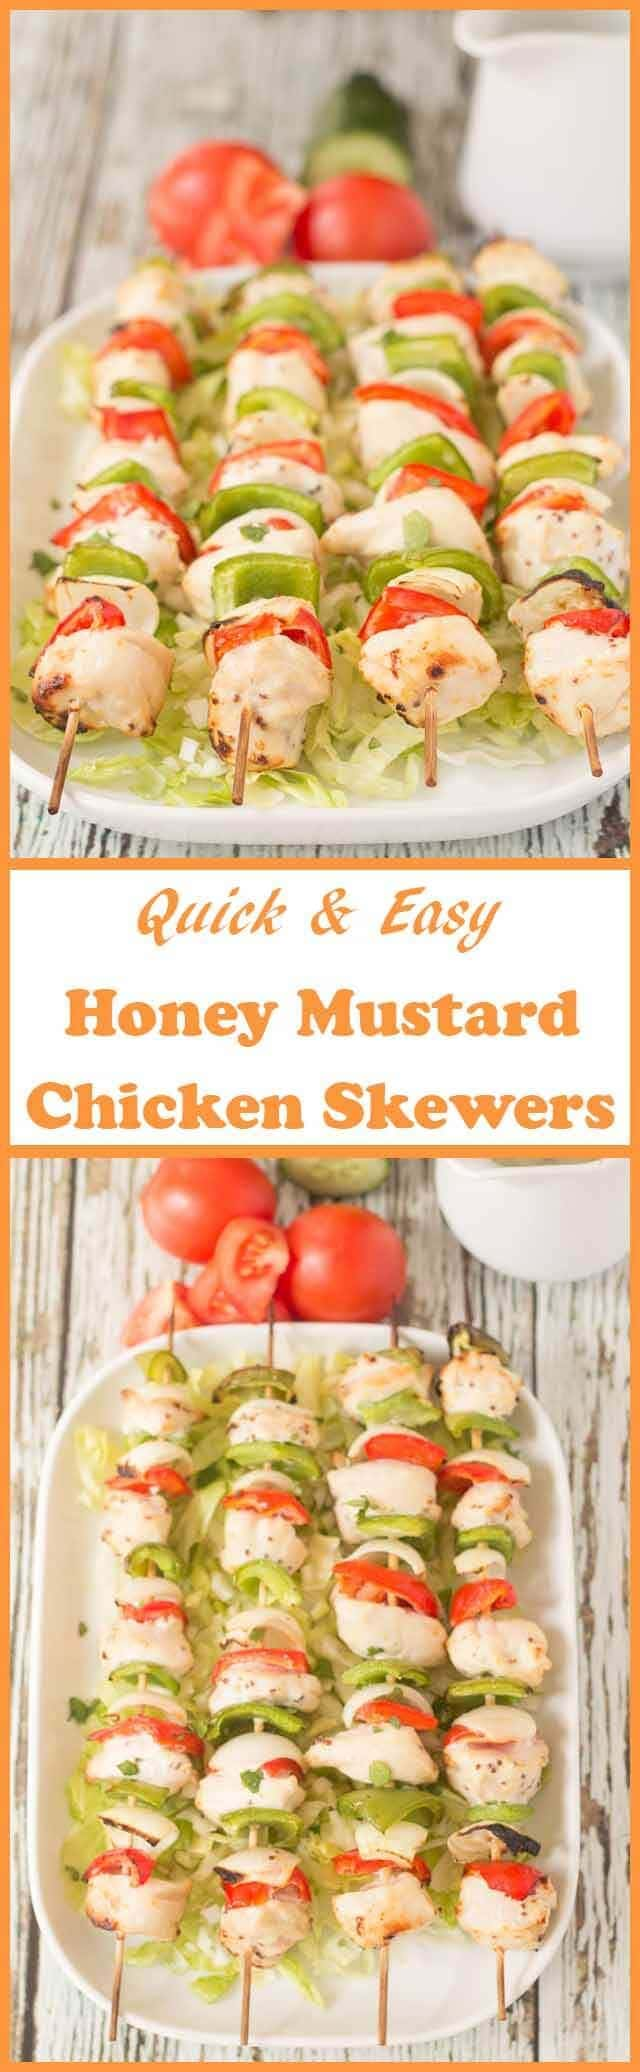 These honey mustard chicken skewersare so easy to make and tasty too. They're grilled in just 25 minutes and are delicious served in wraps with a salad.